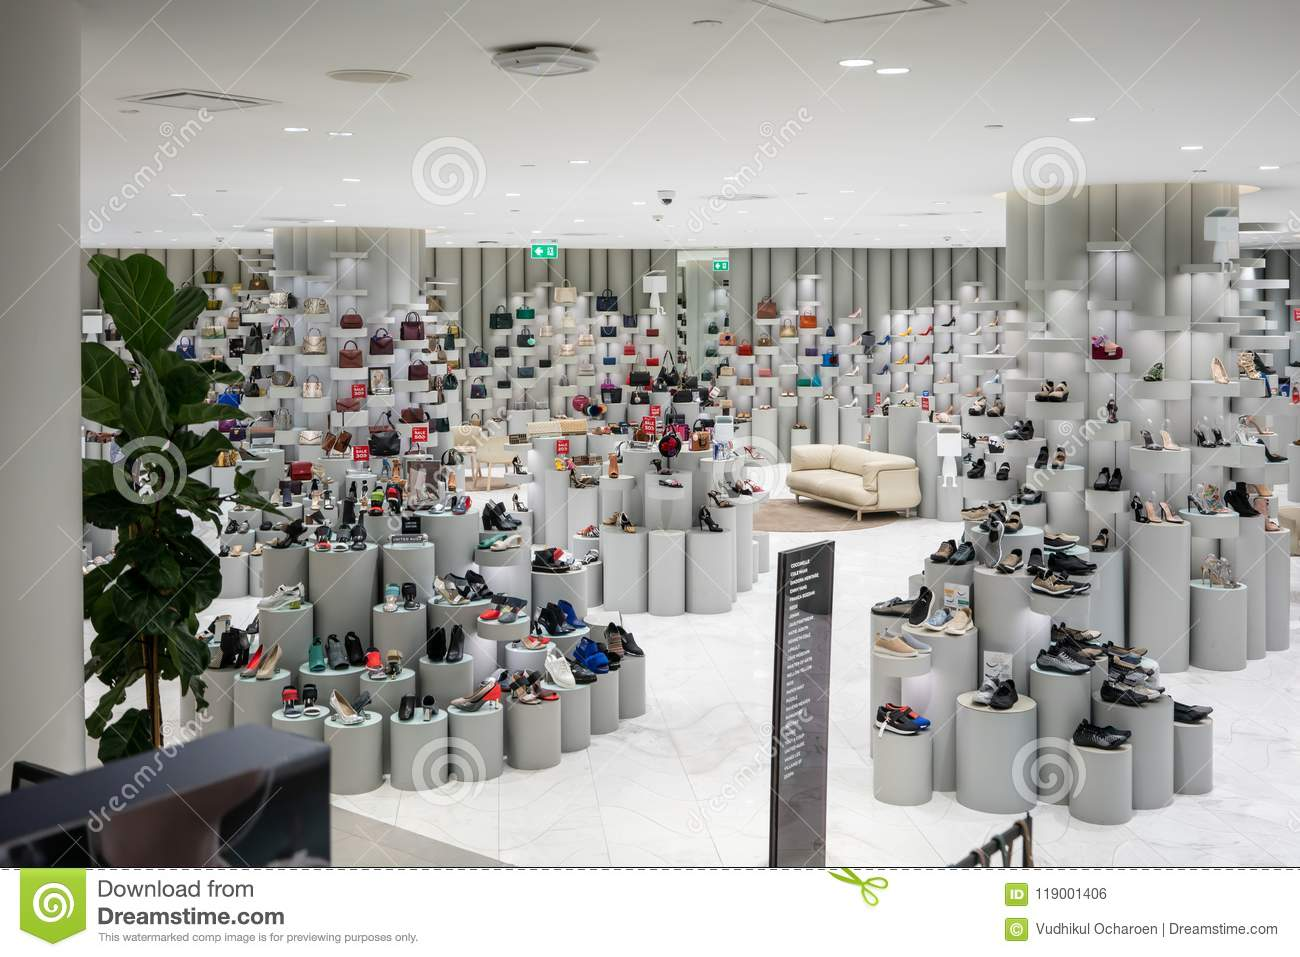 54e1fa99ee Fashionable shoes department at Siam Discovery, Bangkok, Thailand, Apr 11,  2018 : Lighting interior and modern display of shoes area at the modern  mall.